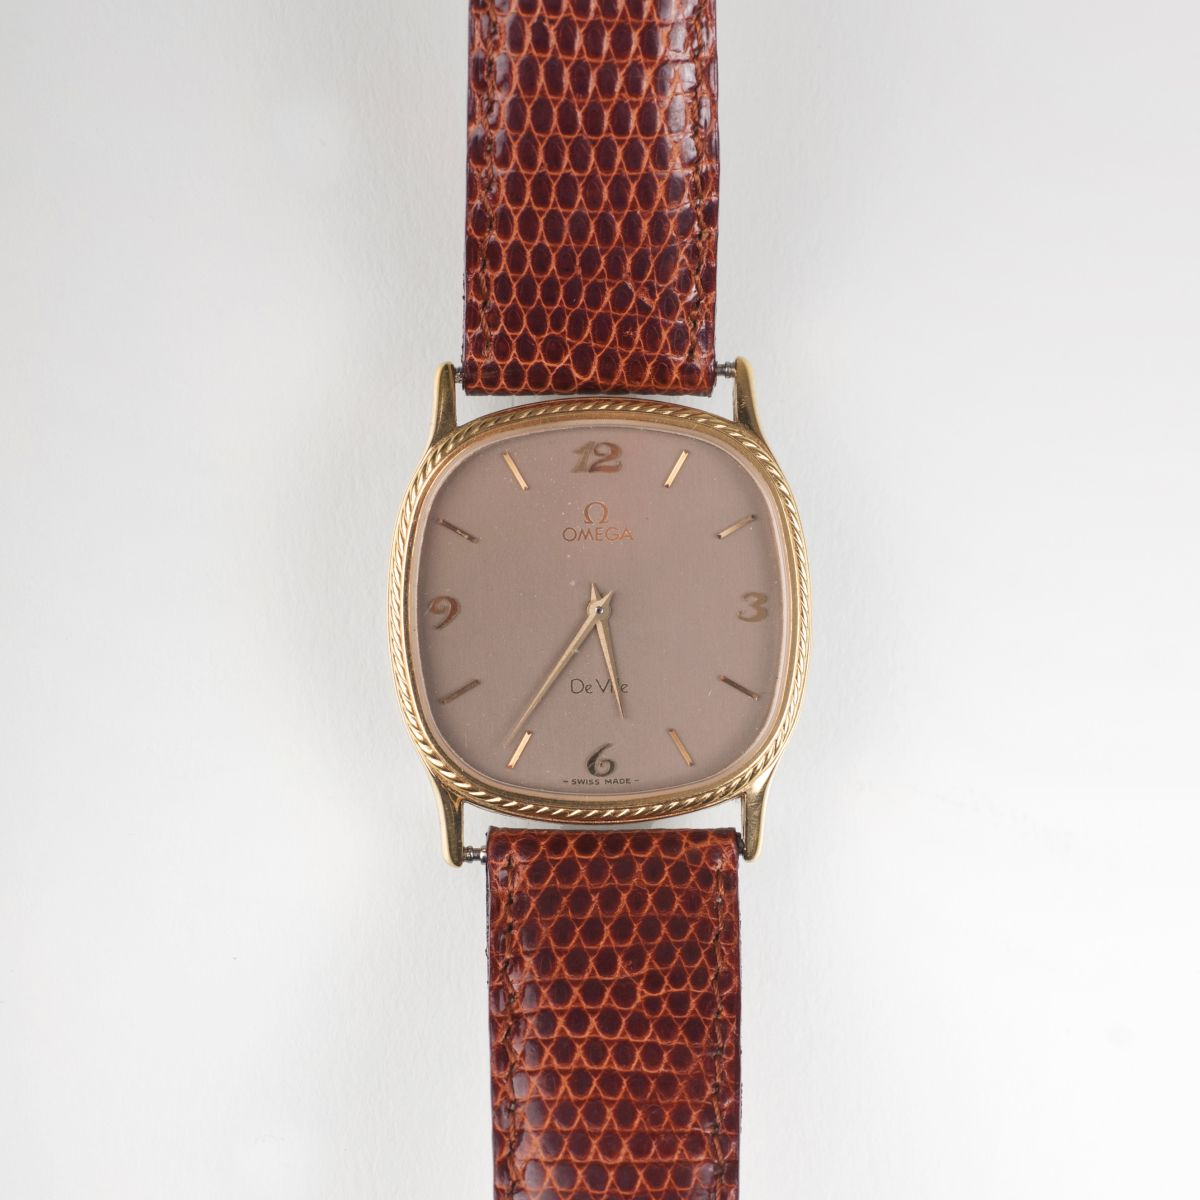 A ladies's watch 'De Ville'